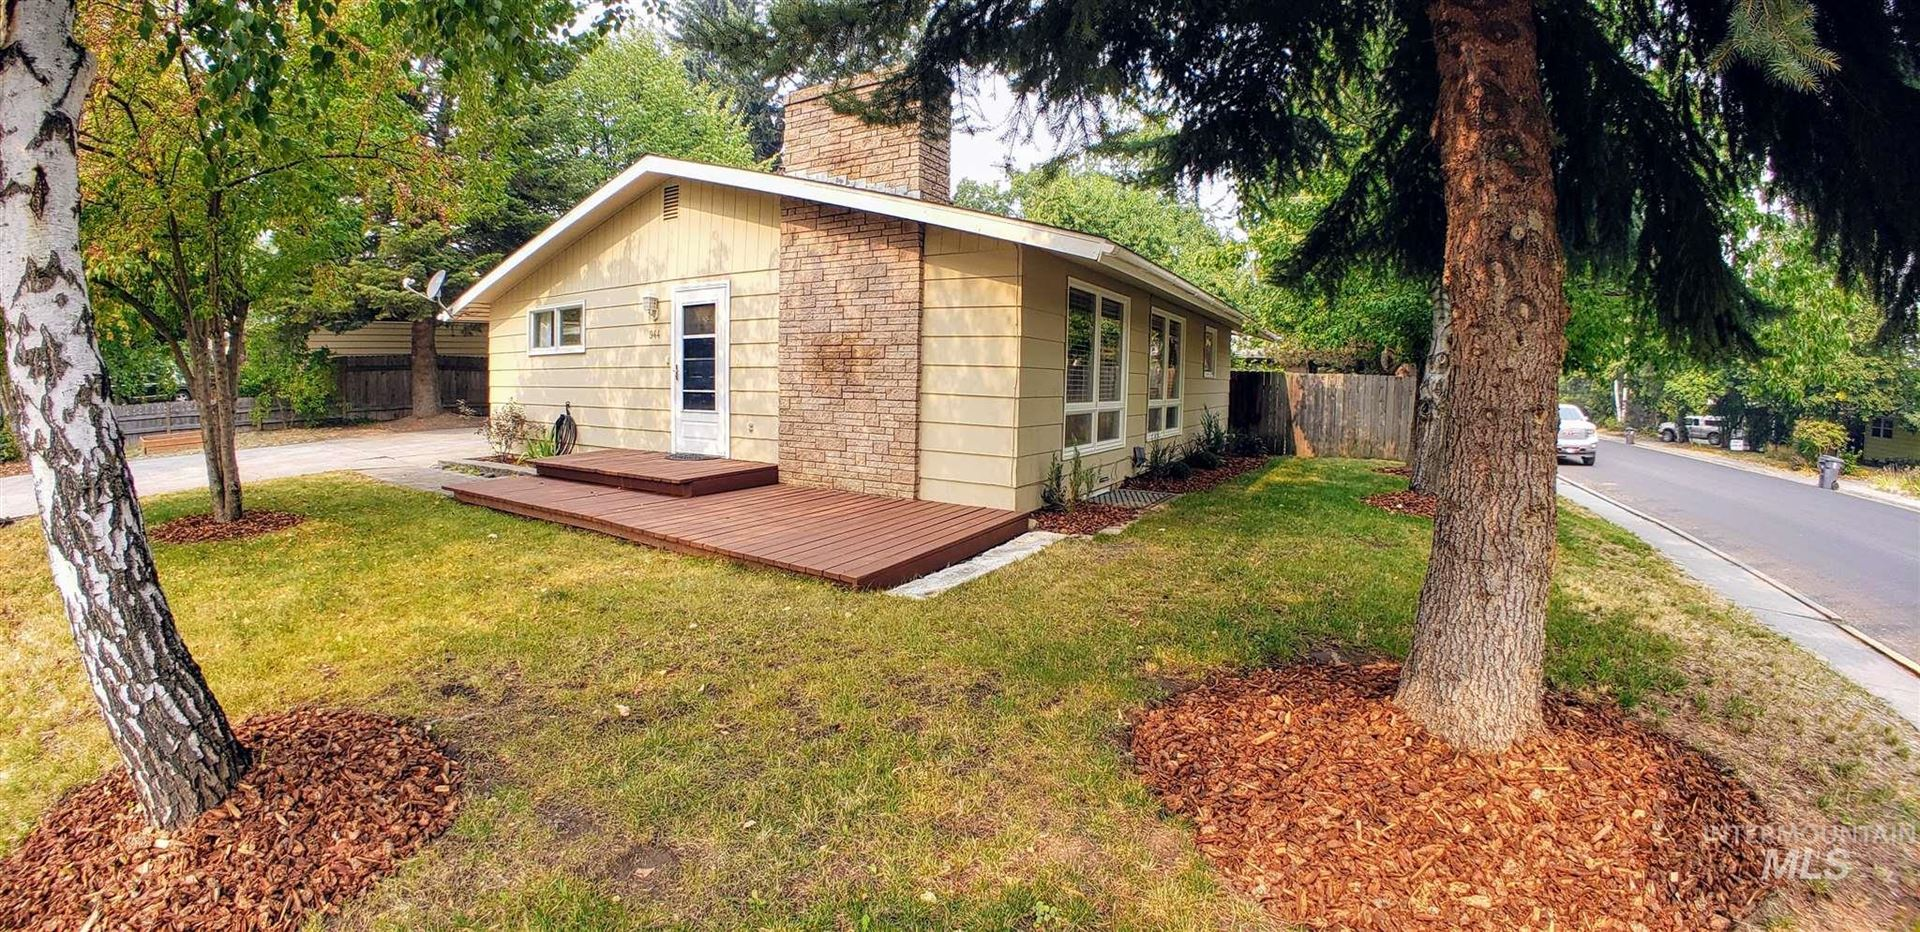 Photo of 944 Mabelle St., Moscow, ID 83843 (MLS # 98781400)